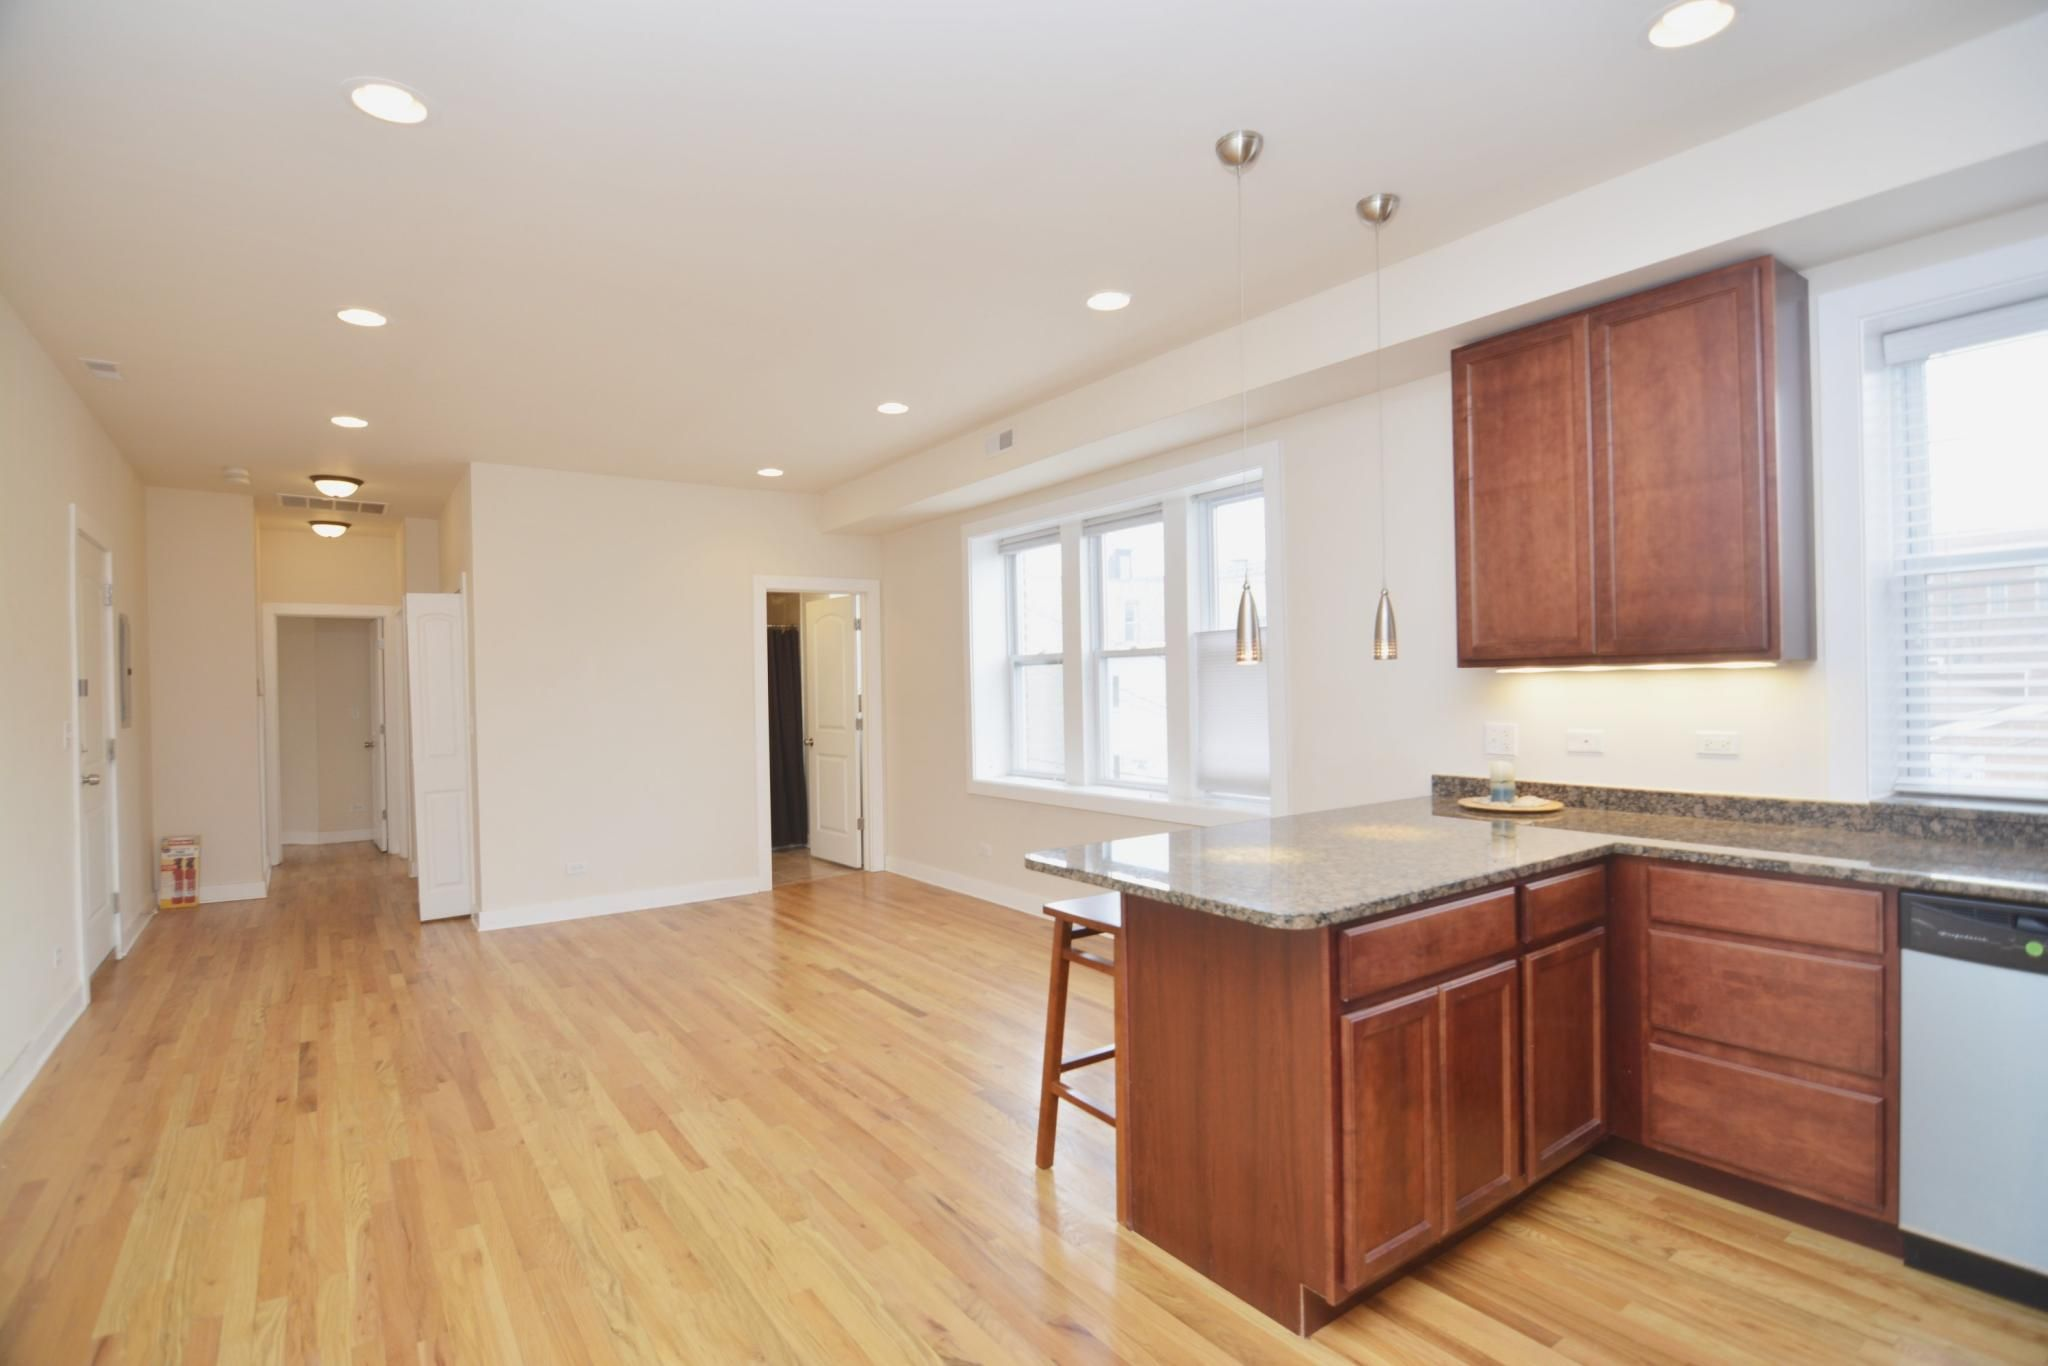 1432 N Maplewood Ave Chicago Il 60622 2 Bed 2 Bath Condo Mls 10763901 17 Photos Trulia New Homes Maplewood Chicago Il